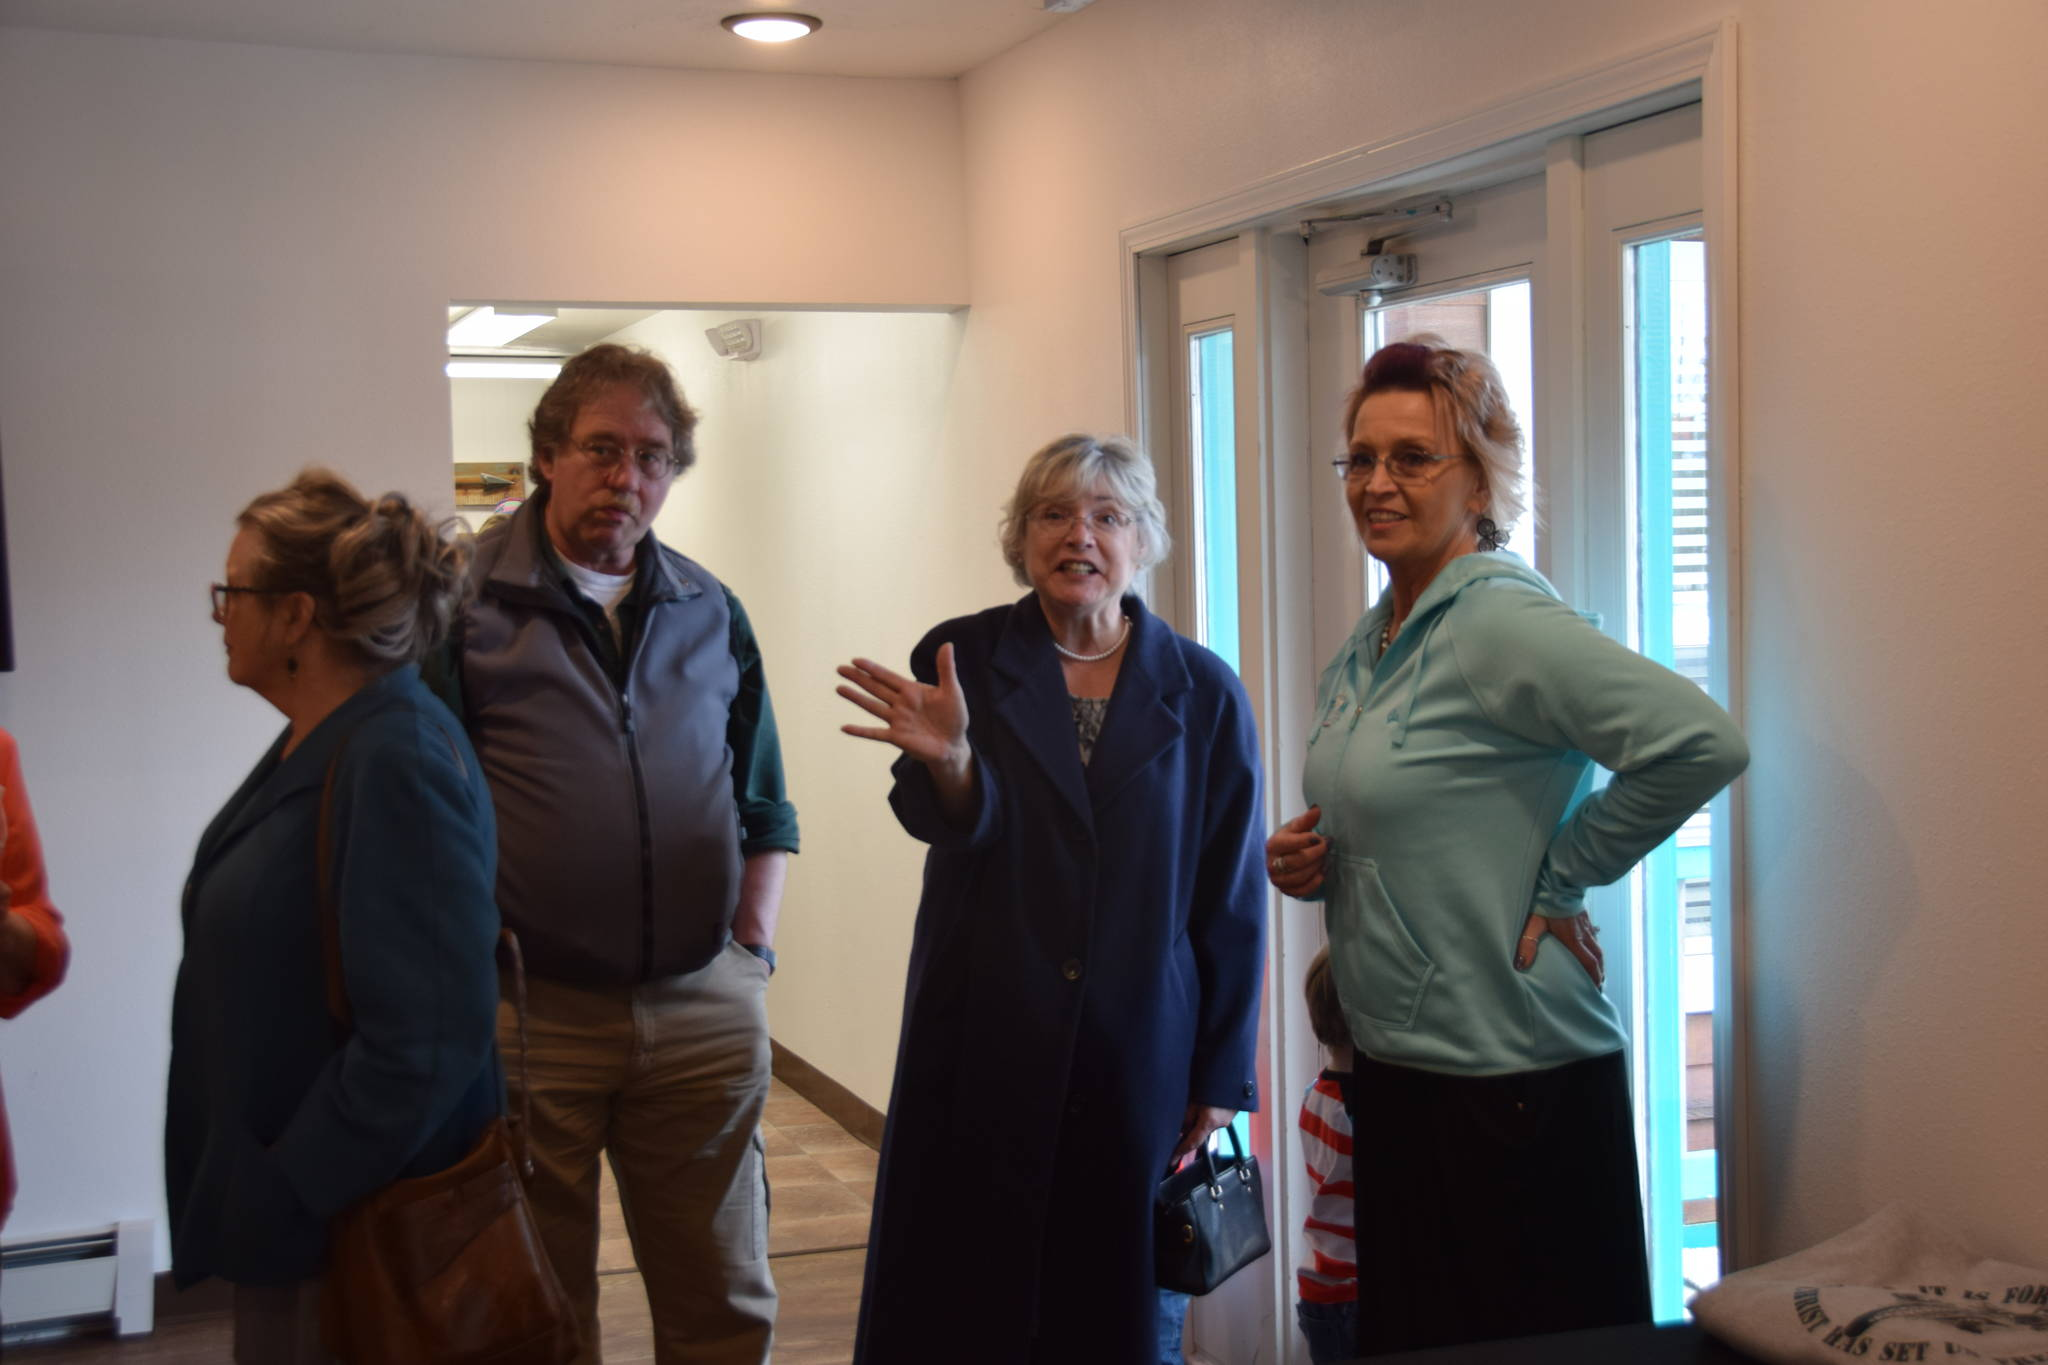 Gail Kennedy of Freedom House, right, speaks with members of the community during the opening of Freedom House's men's residence in Soldotna, Alaska, on March 24, 2019. (Photo by Brian Mazurek/Peninsula Clarion)